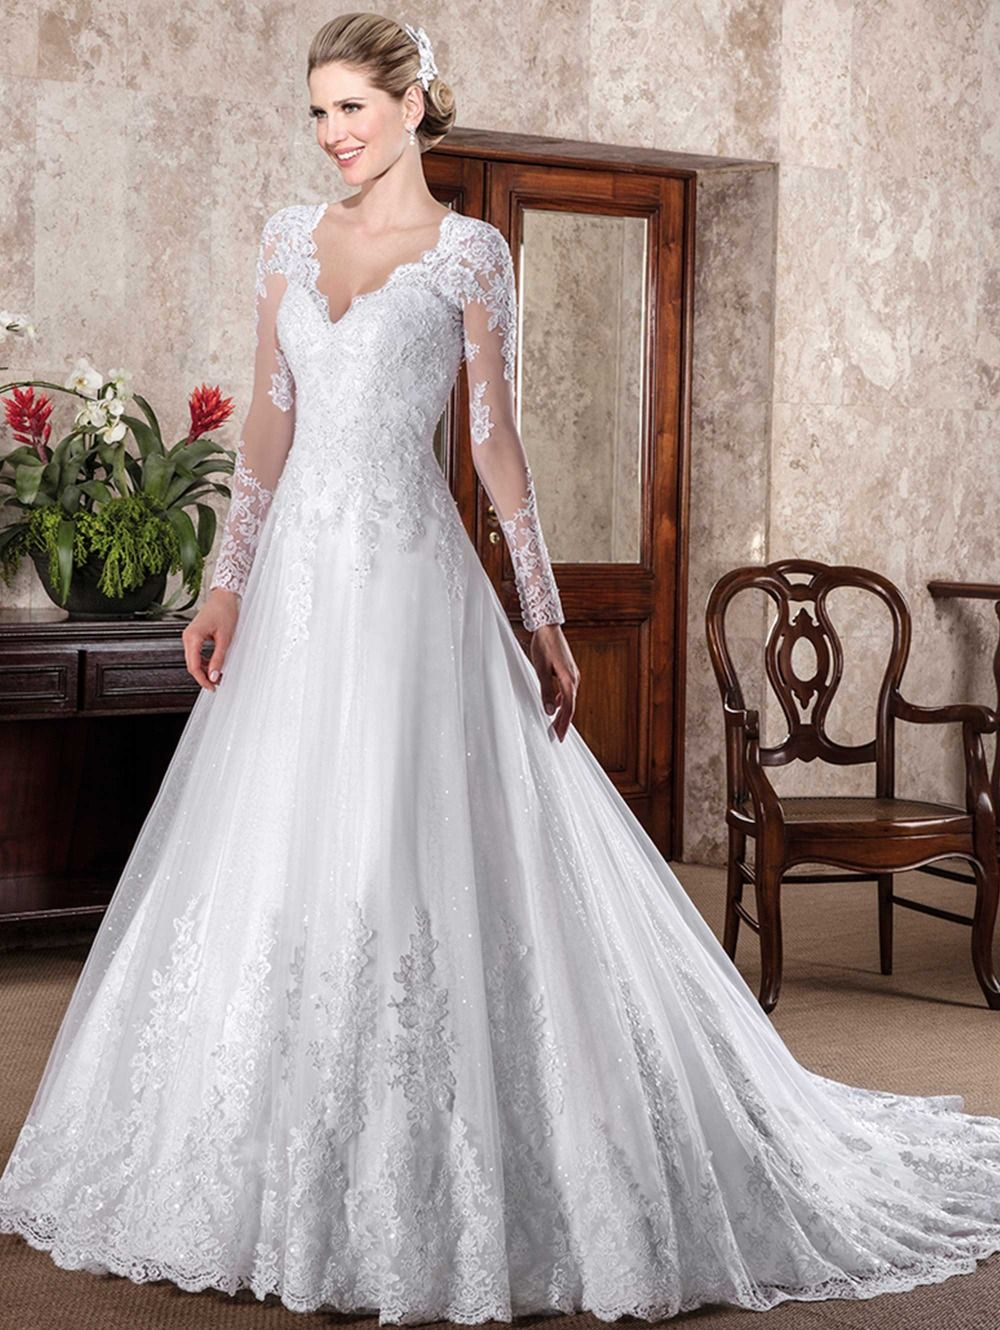 Click to buy ucuc vestido de noiva long sleeves wedding dresses